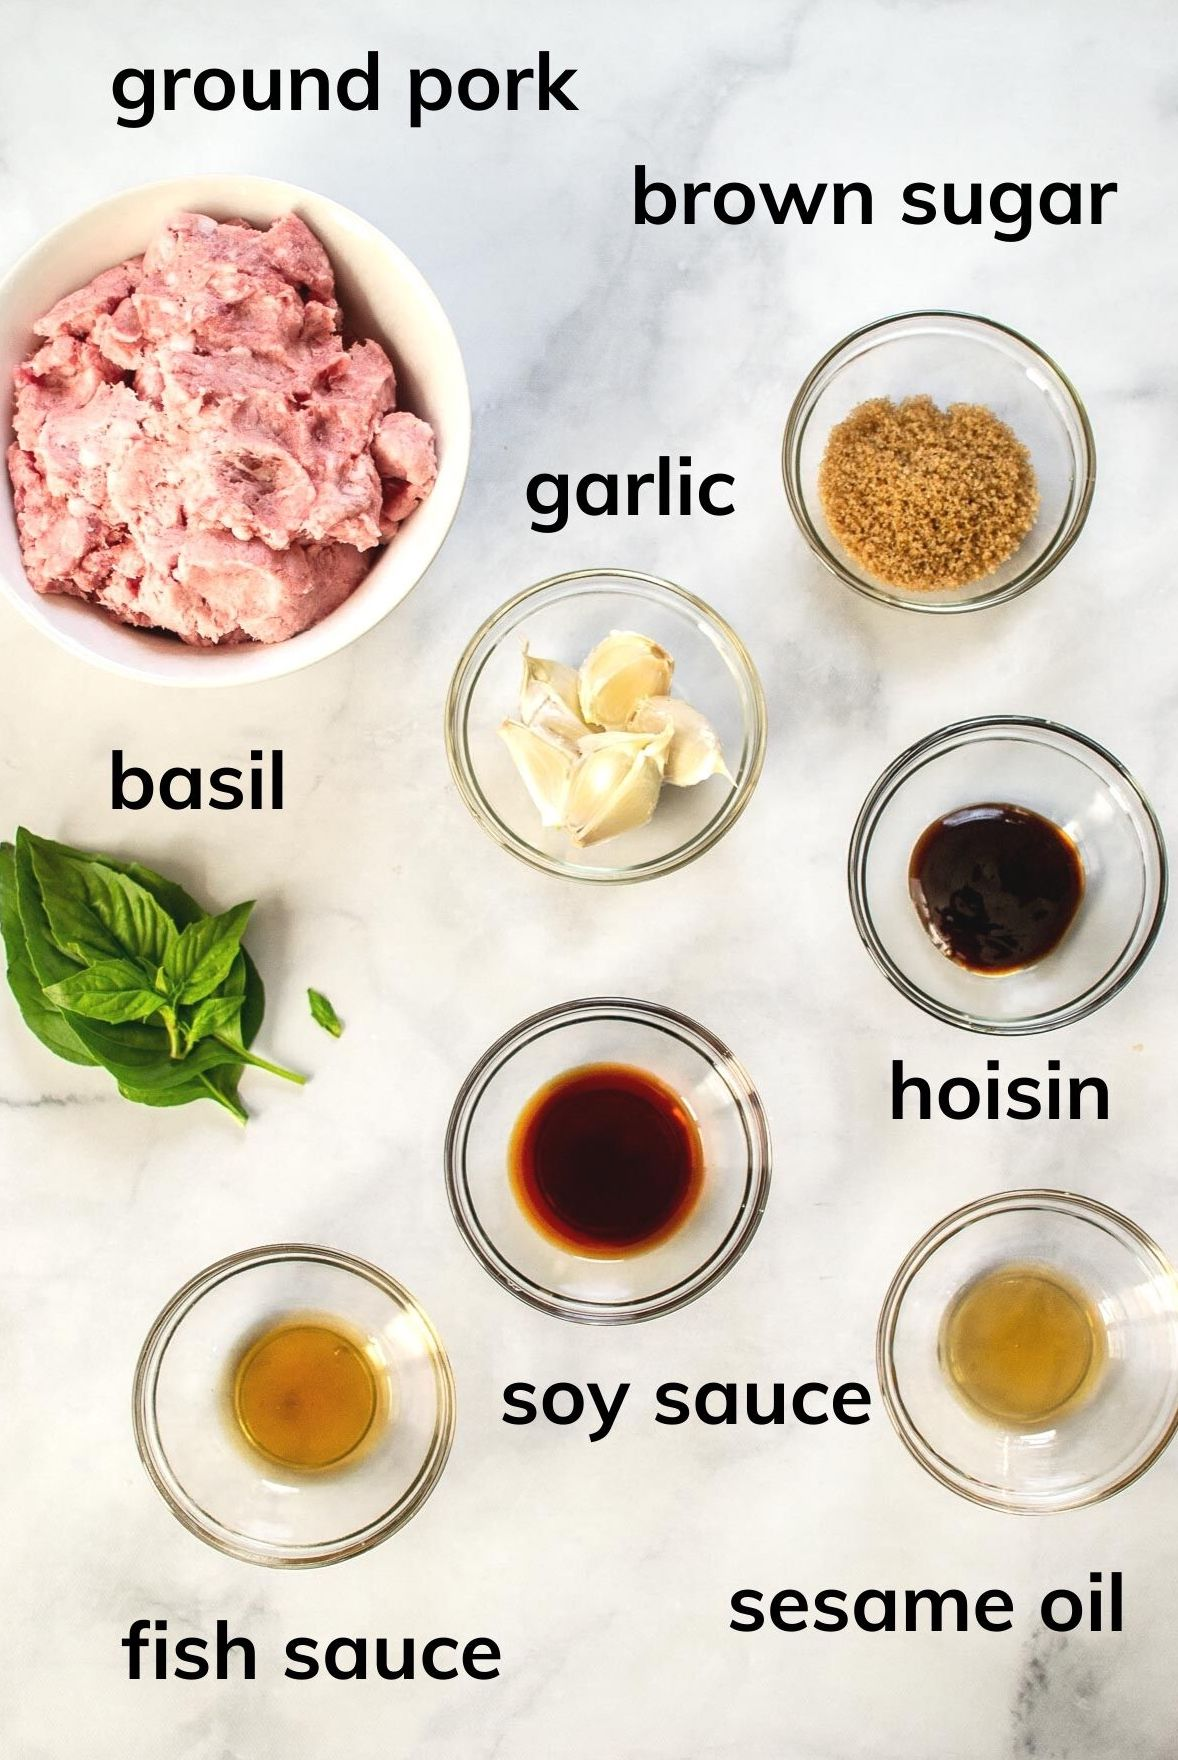 Ingredients needed to make this dish.